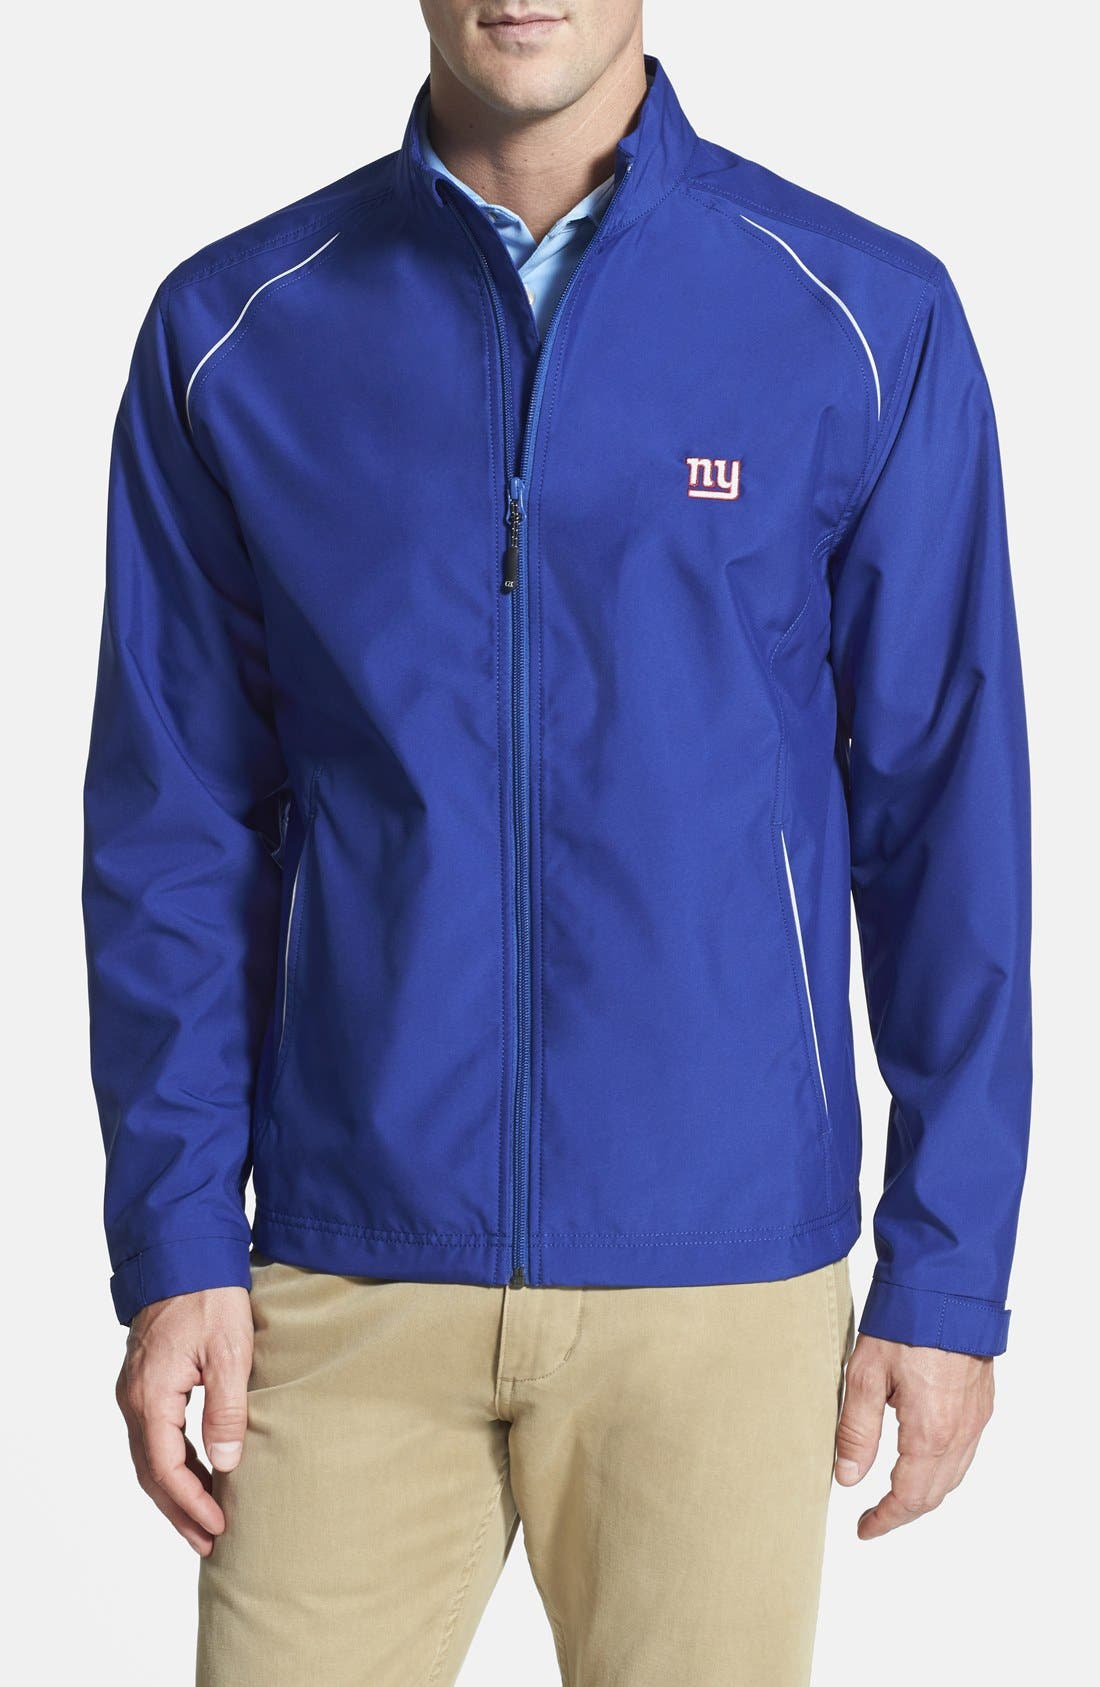 New York Giants - Beacon WeatherTec Wind & Water Resistant Jacket,                             Main thumbnail 1, color,                             Tour Blue